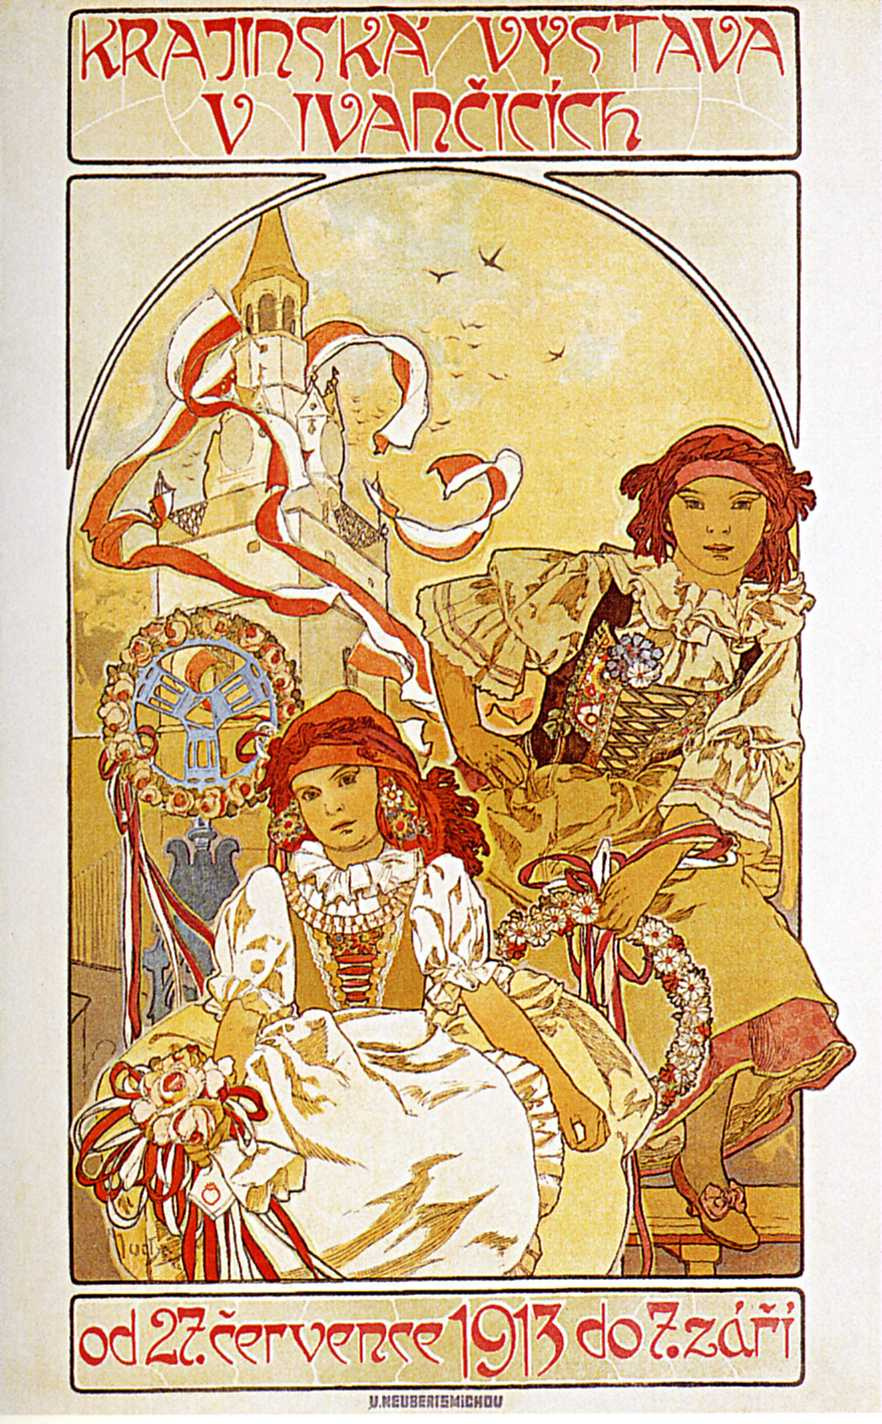 Alfonse Mucha. Advertising poster for the Regional exhibition in Ivančice